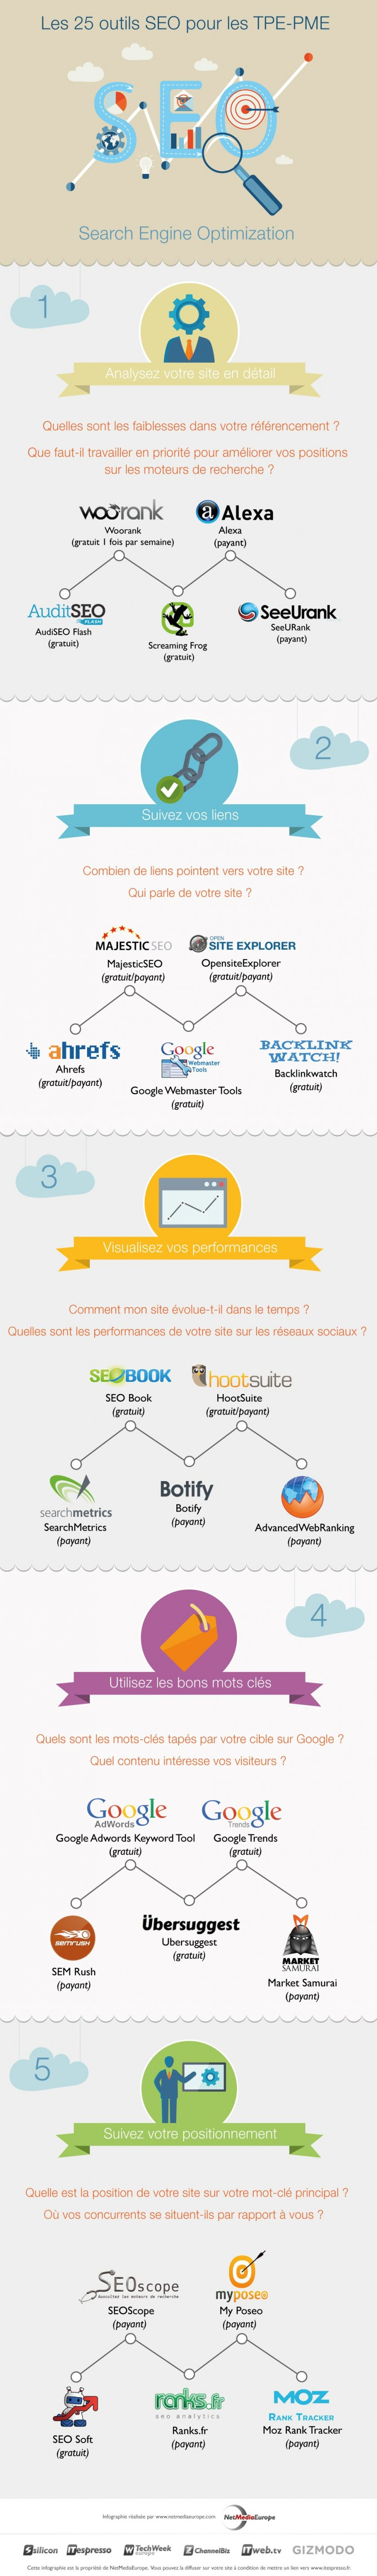 SEO 25 outils essentiels - TPE PME - infographie